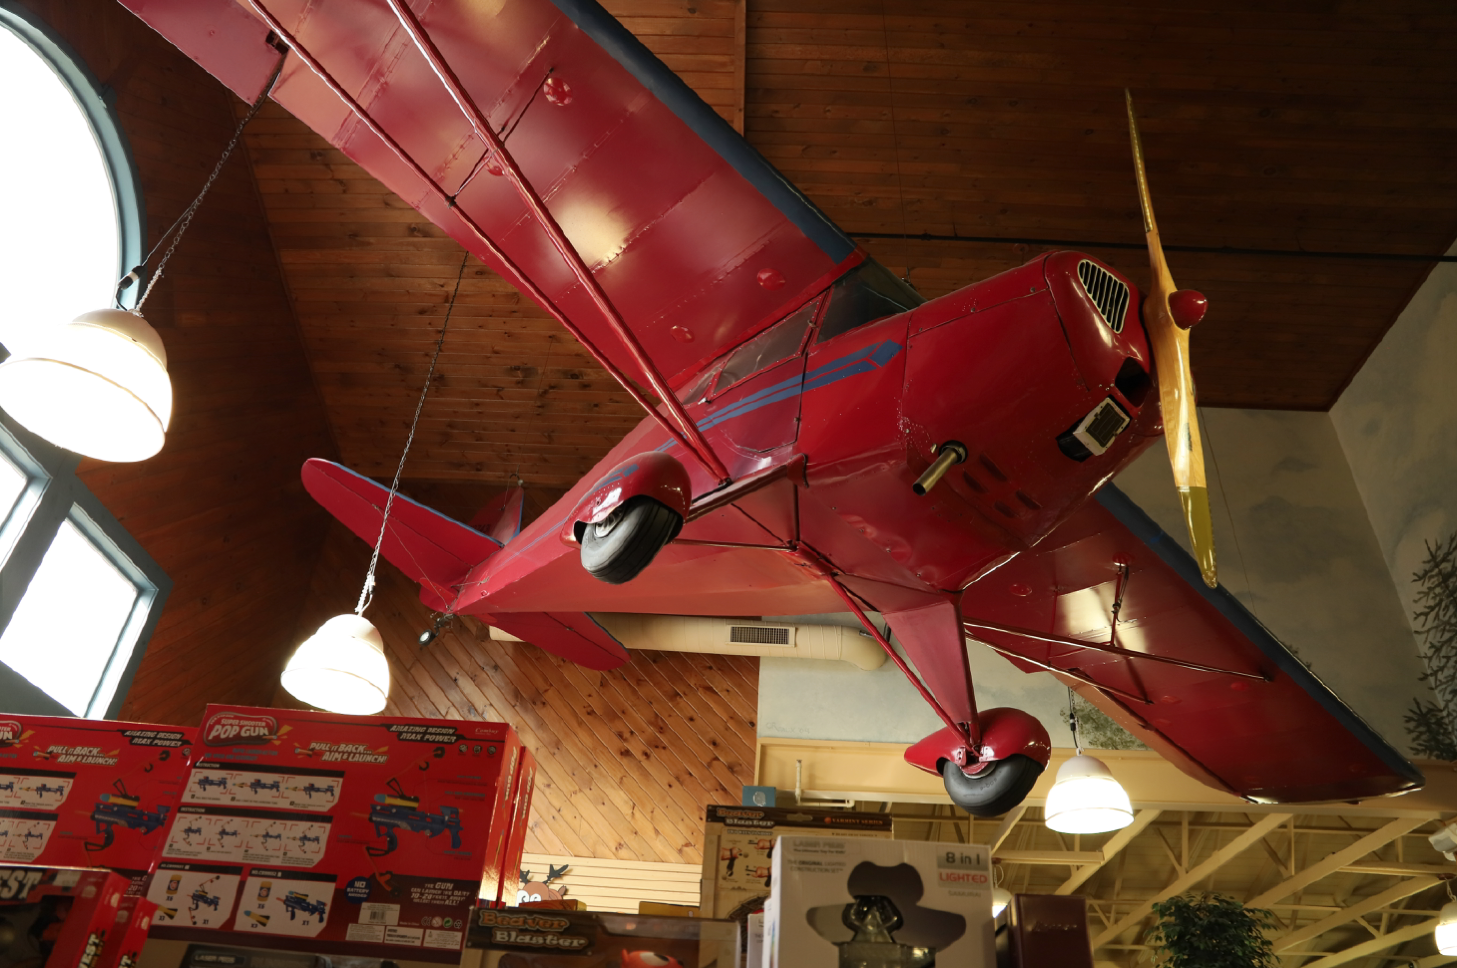 The RED BEARON! It's an actual airplane flying over the toy section!